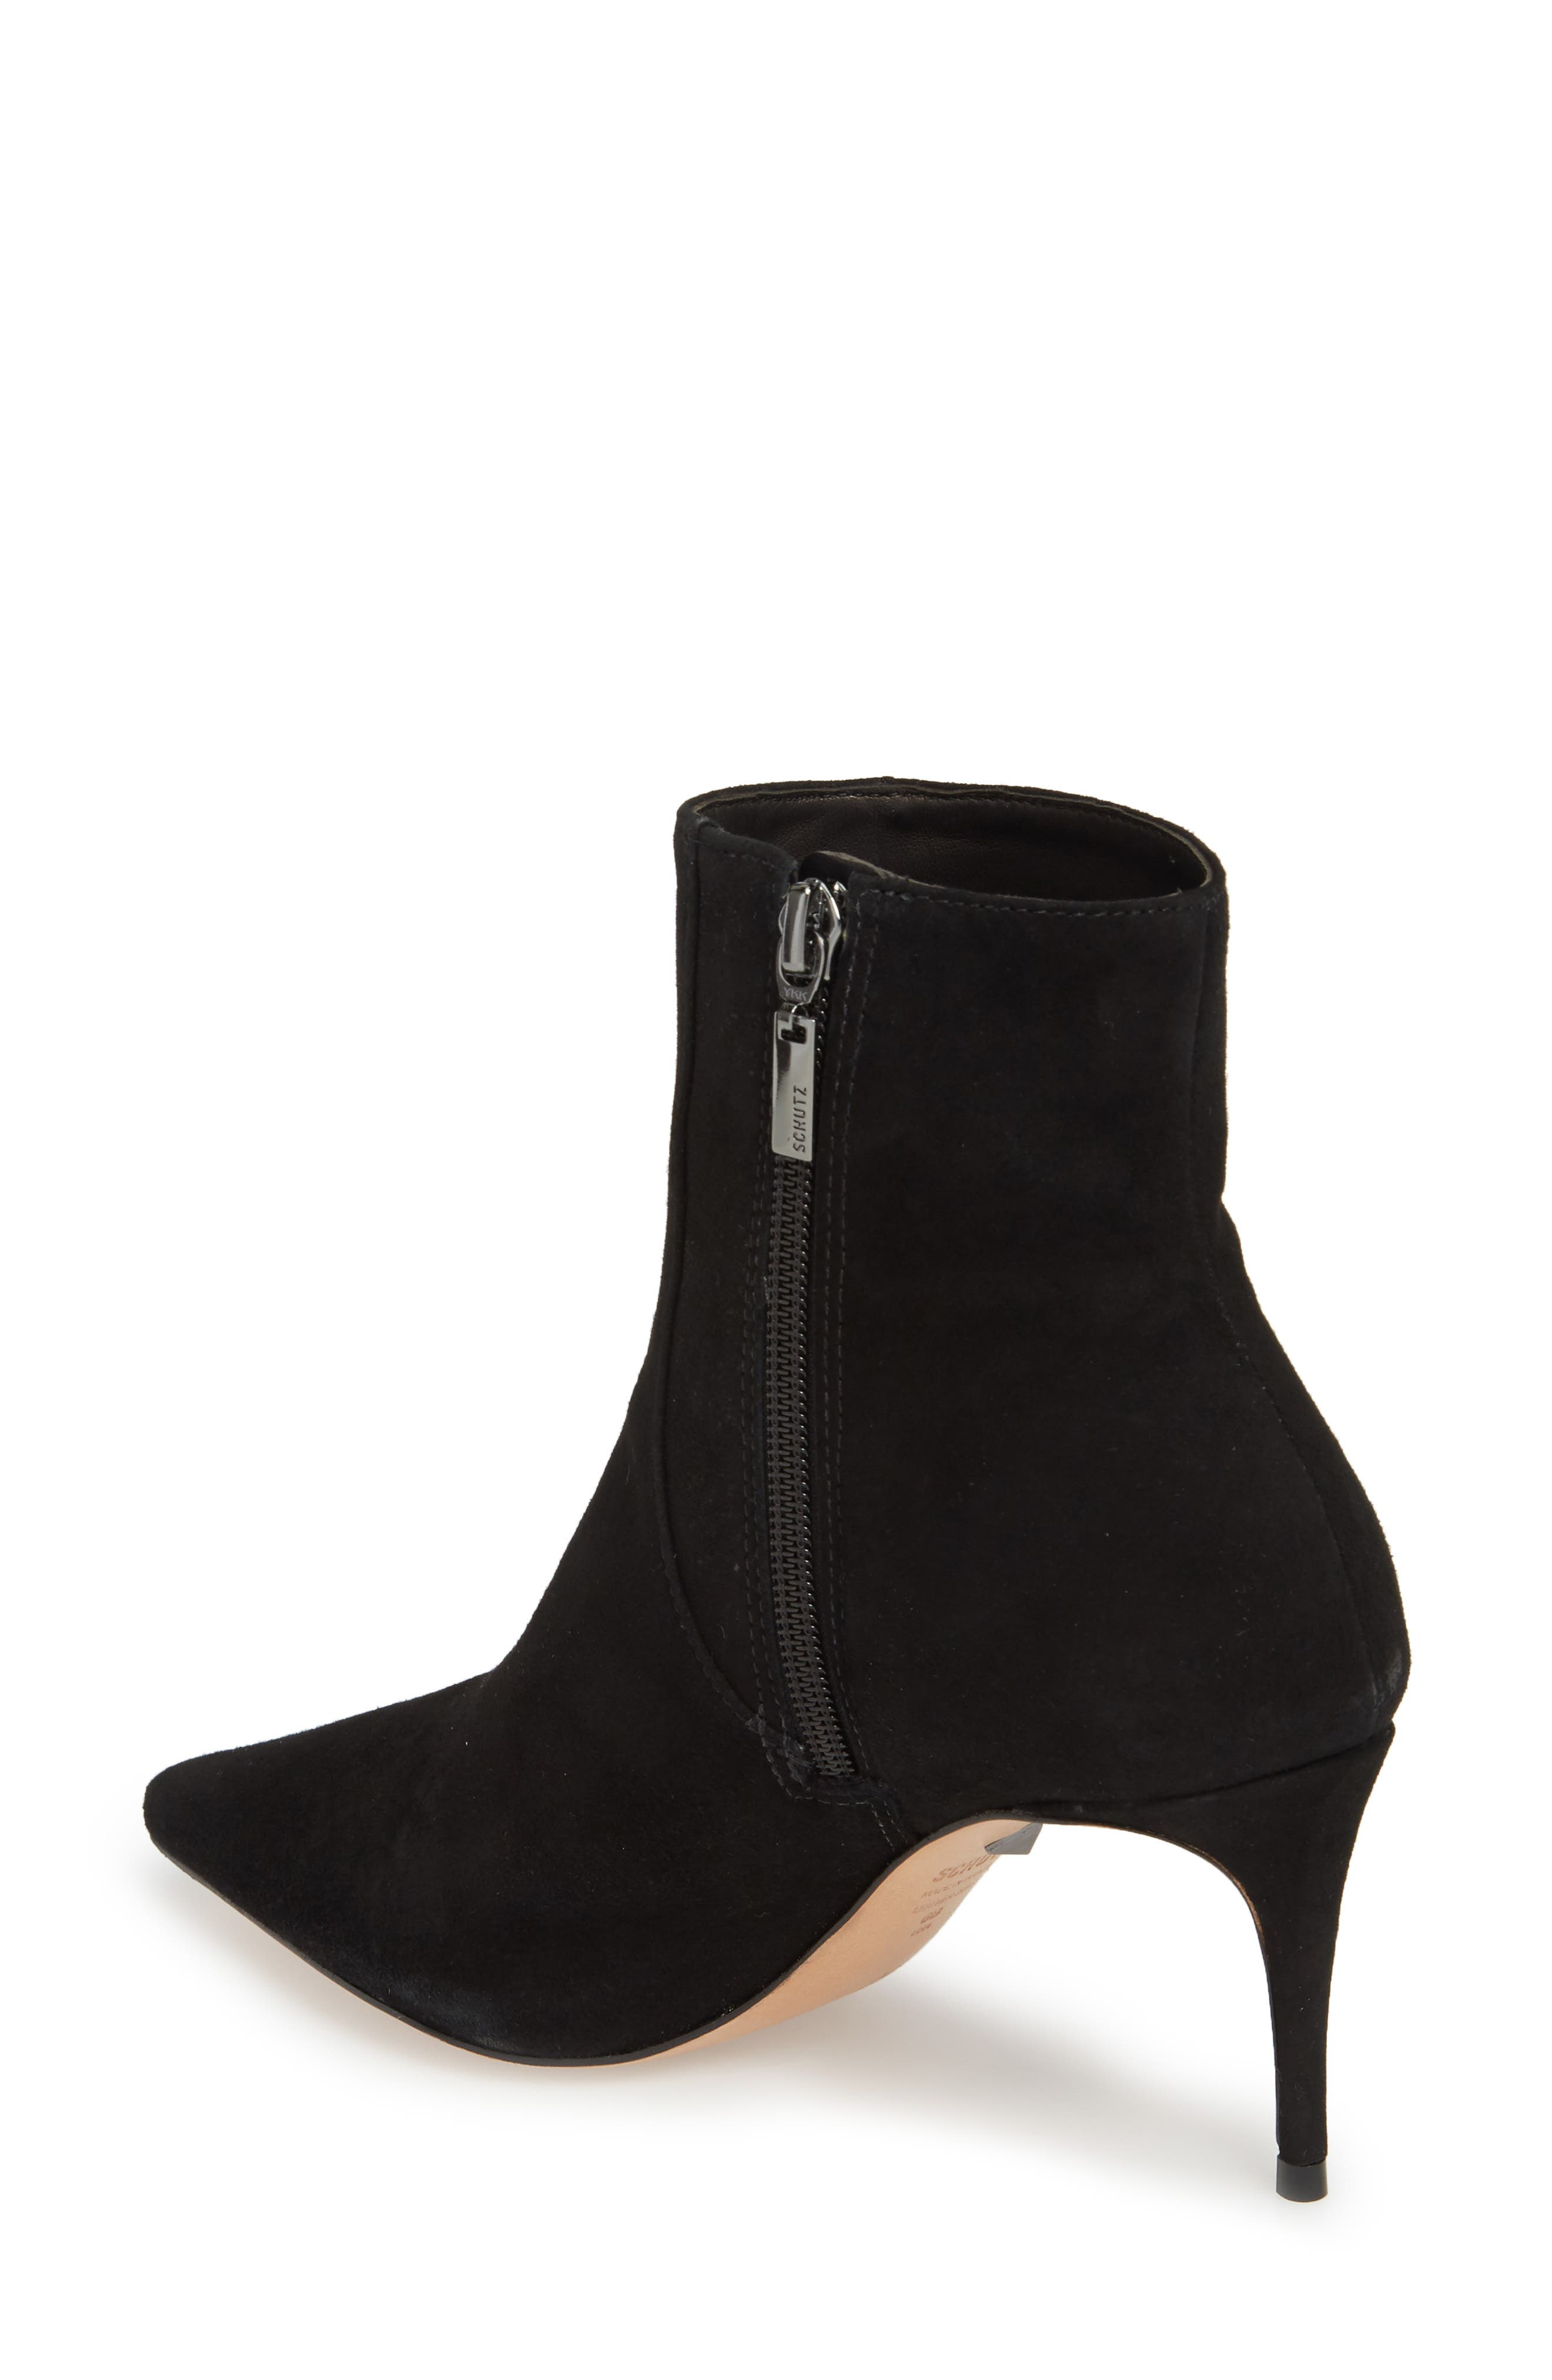 Bette Bootie,                             Alternate thumbnail 2, color,                             BLACK SUEDE